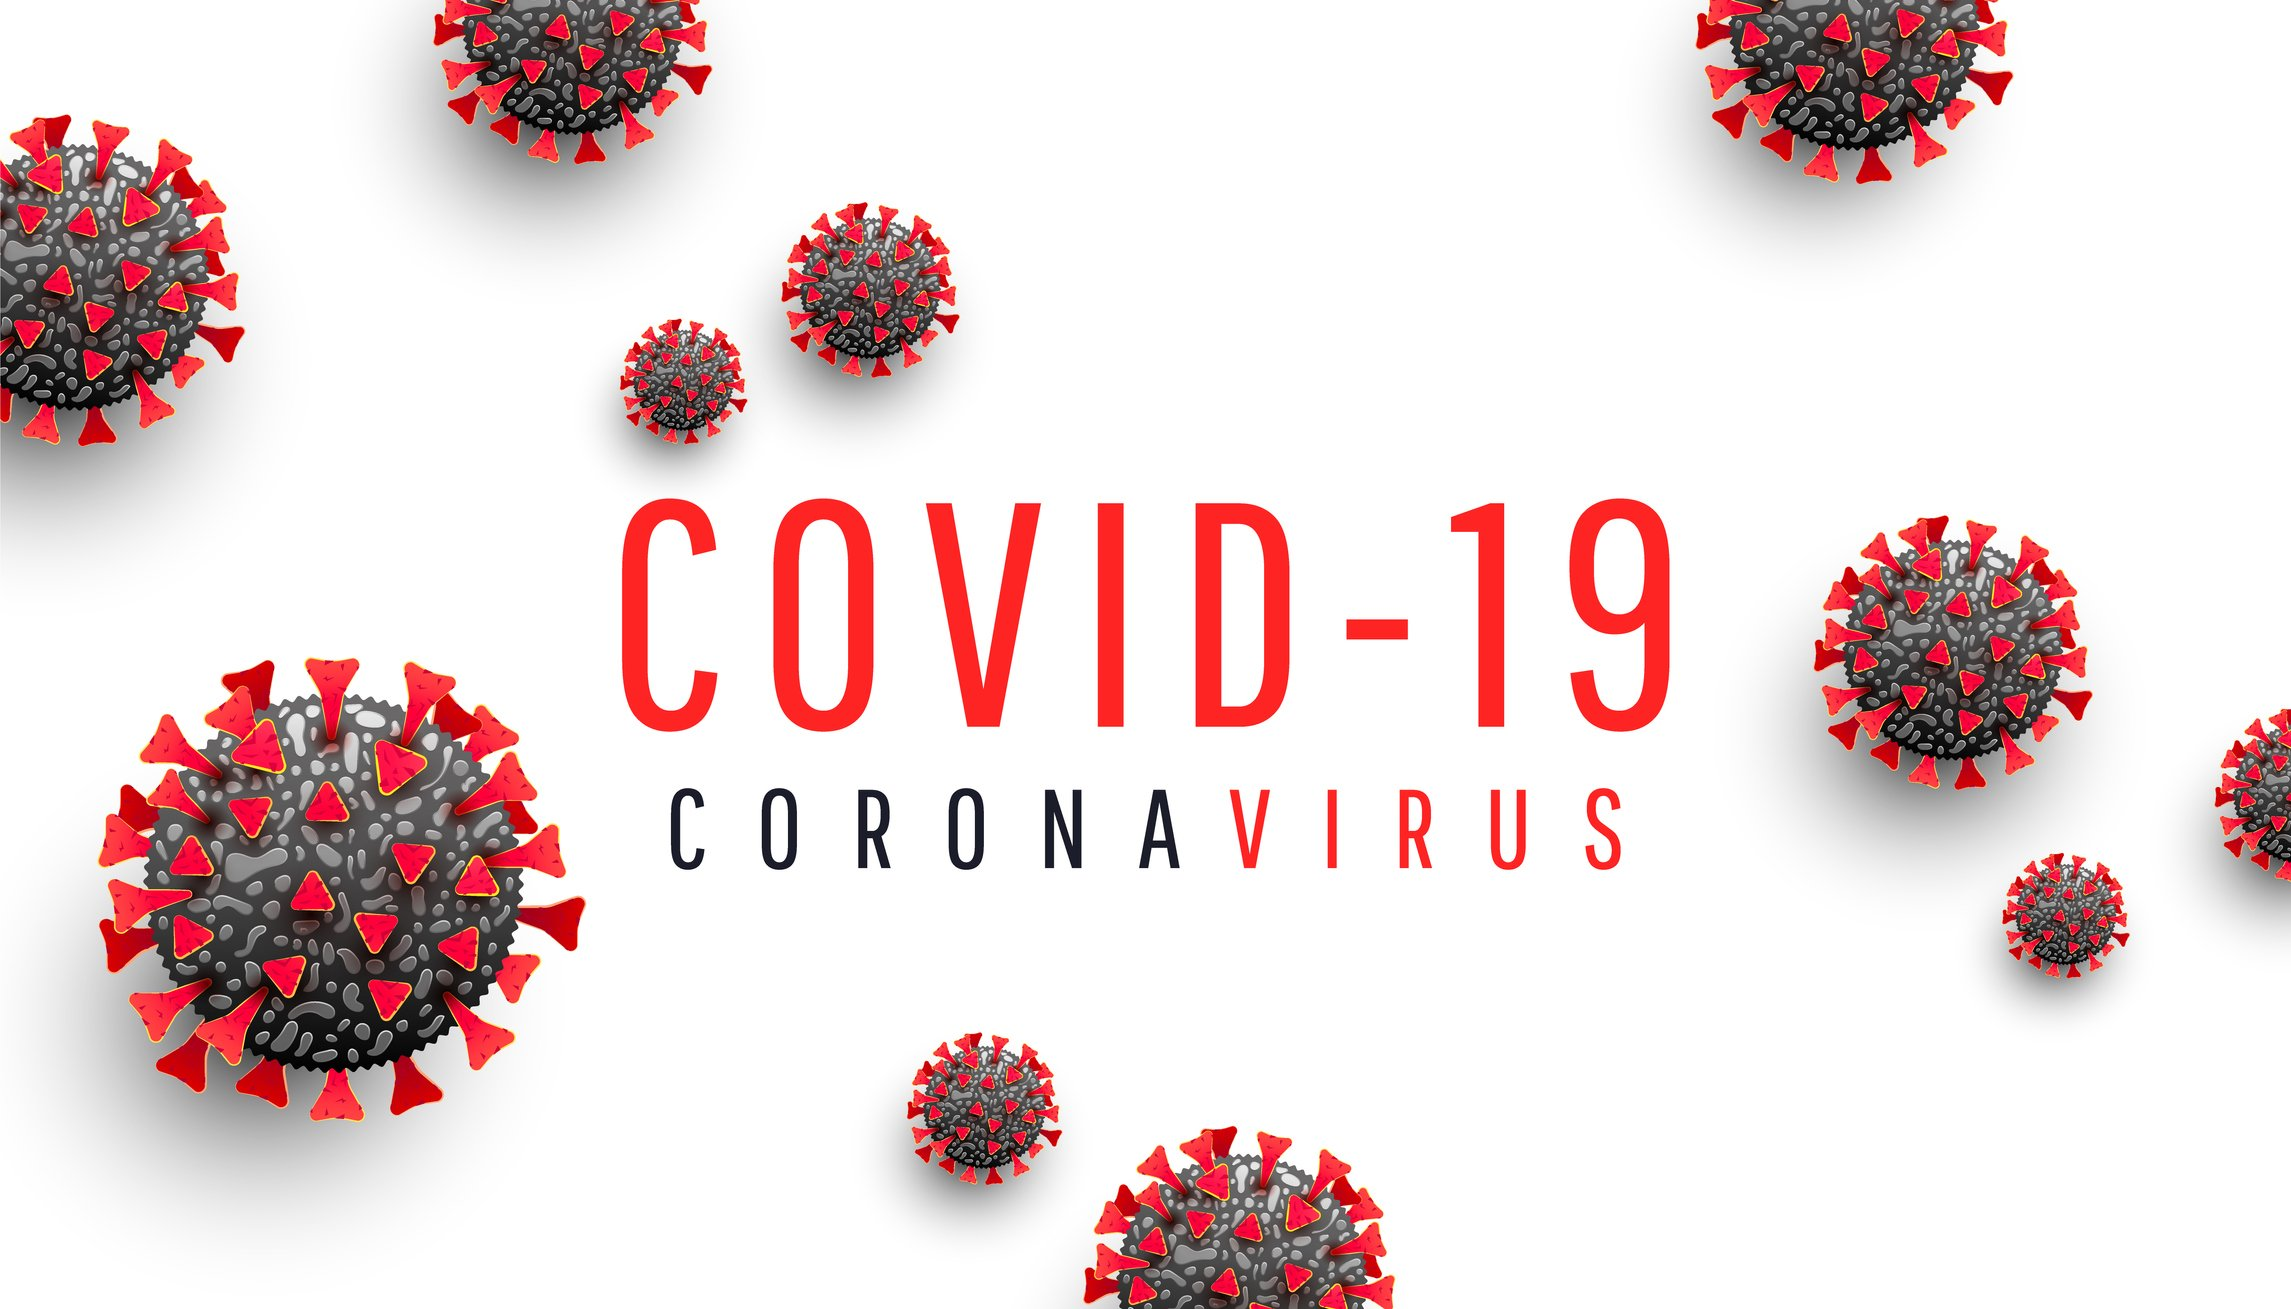 Horizontal vector illustration of Coronavirus disease COVID-19 medical web banner with SARS-CoV-2 virus molecule and text on a white background.  | Photo: Getty Images